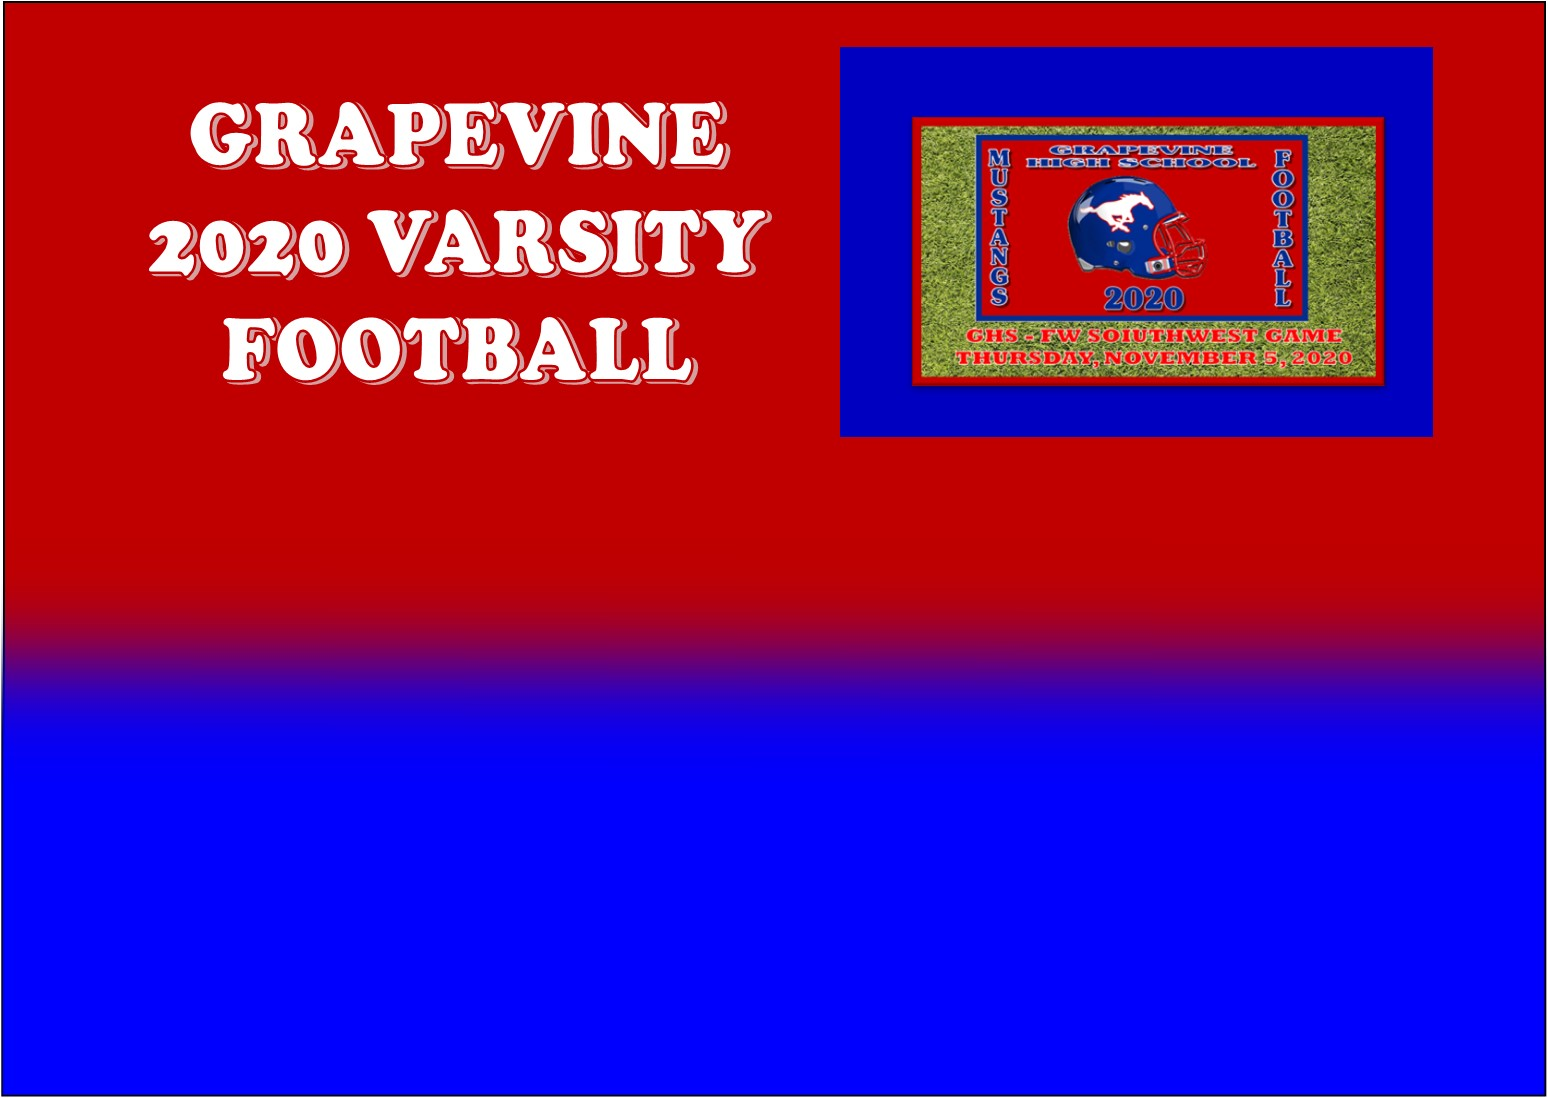 GCISD Football:  Grapevine Mustangs Triumph Over Fort Worth Southwest Raiders 34-27